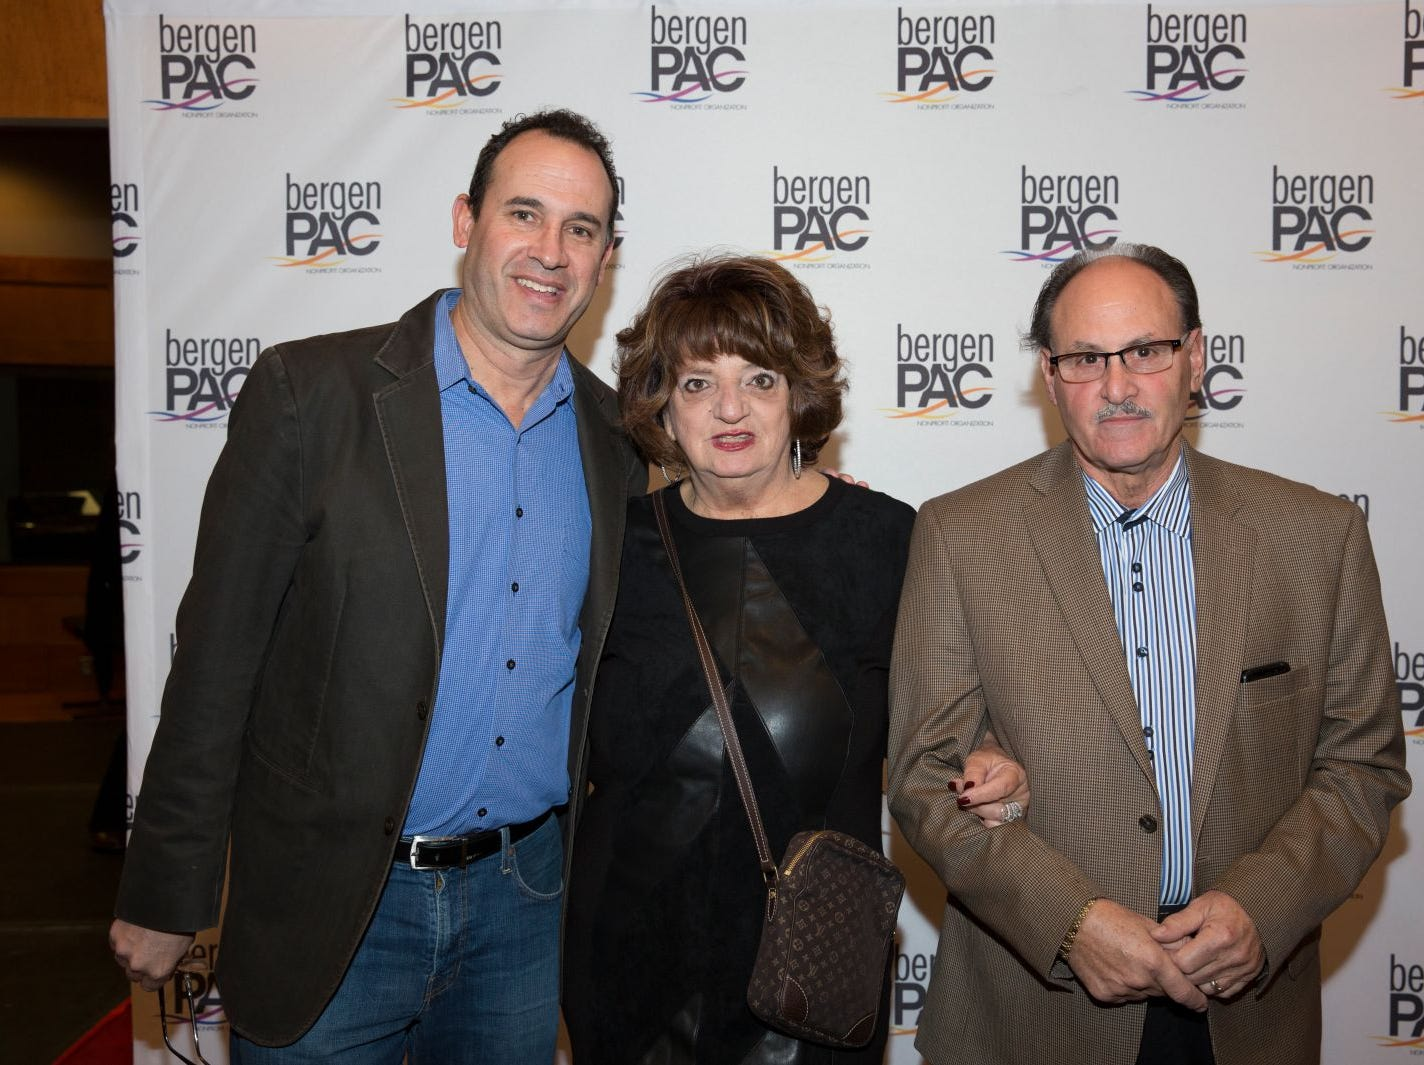 Devin Cohan, Doreen and Allen Fischbein. BergenPAC held its annual fall gala featuring John Fogerty in Englewood. This year's honoree was Fernando Garip, from Wilmington Trust and M&T Bank. 11/08/2018